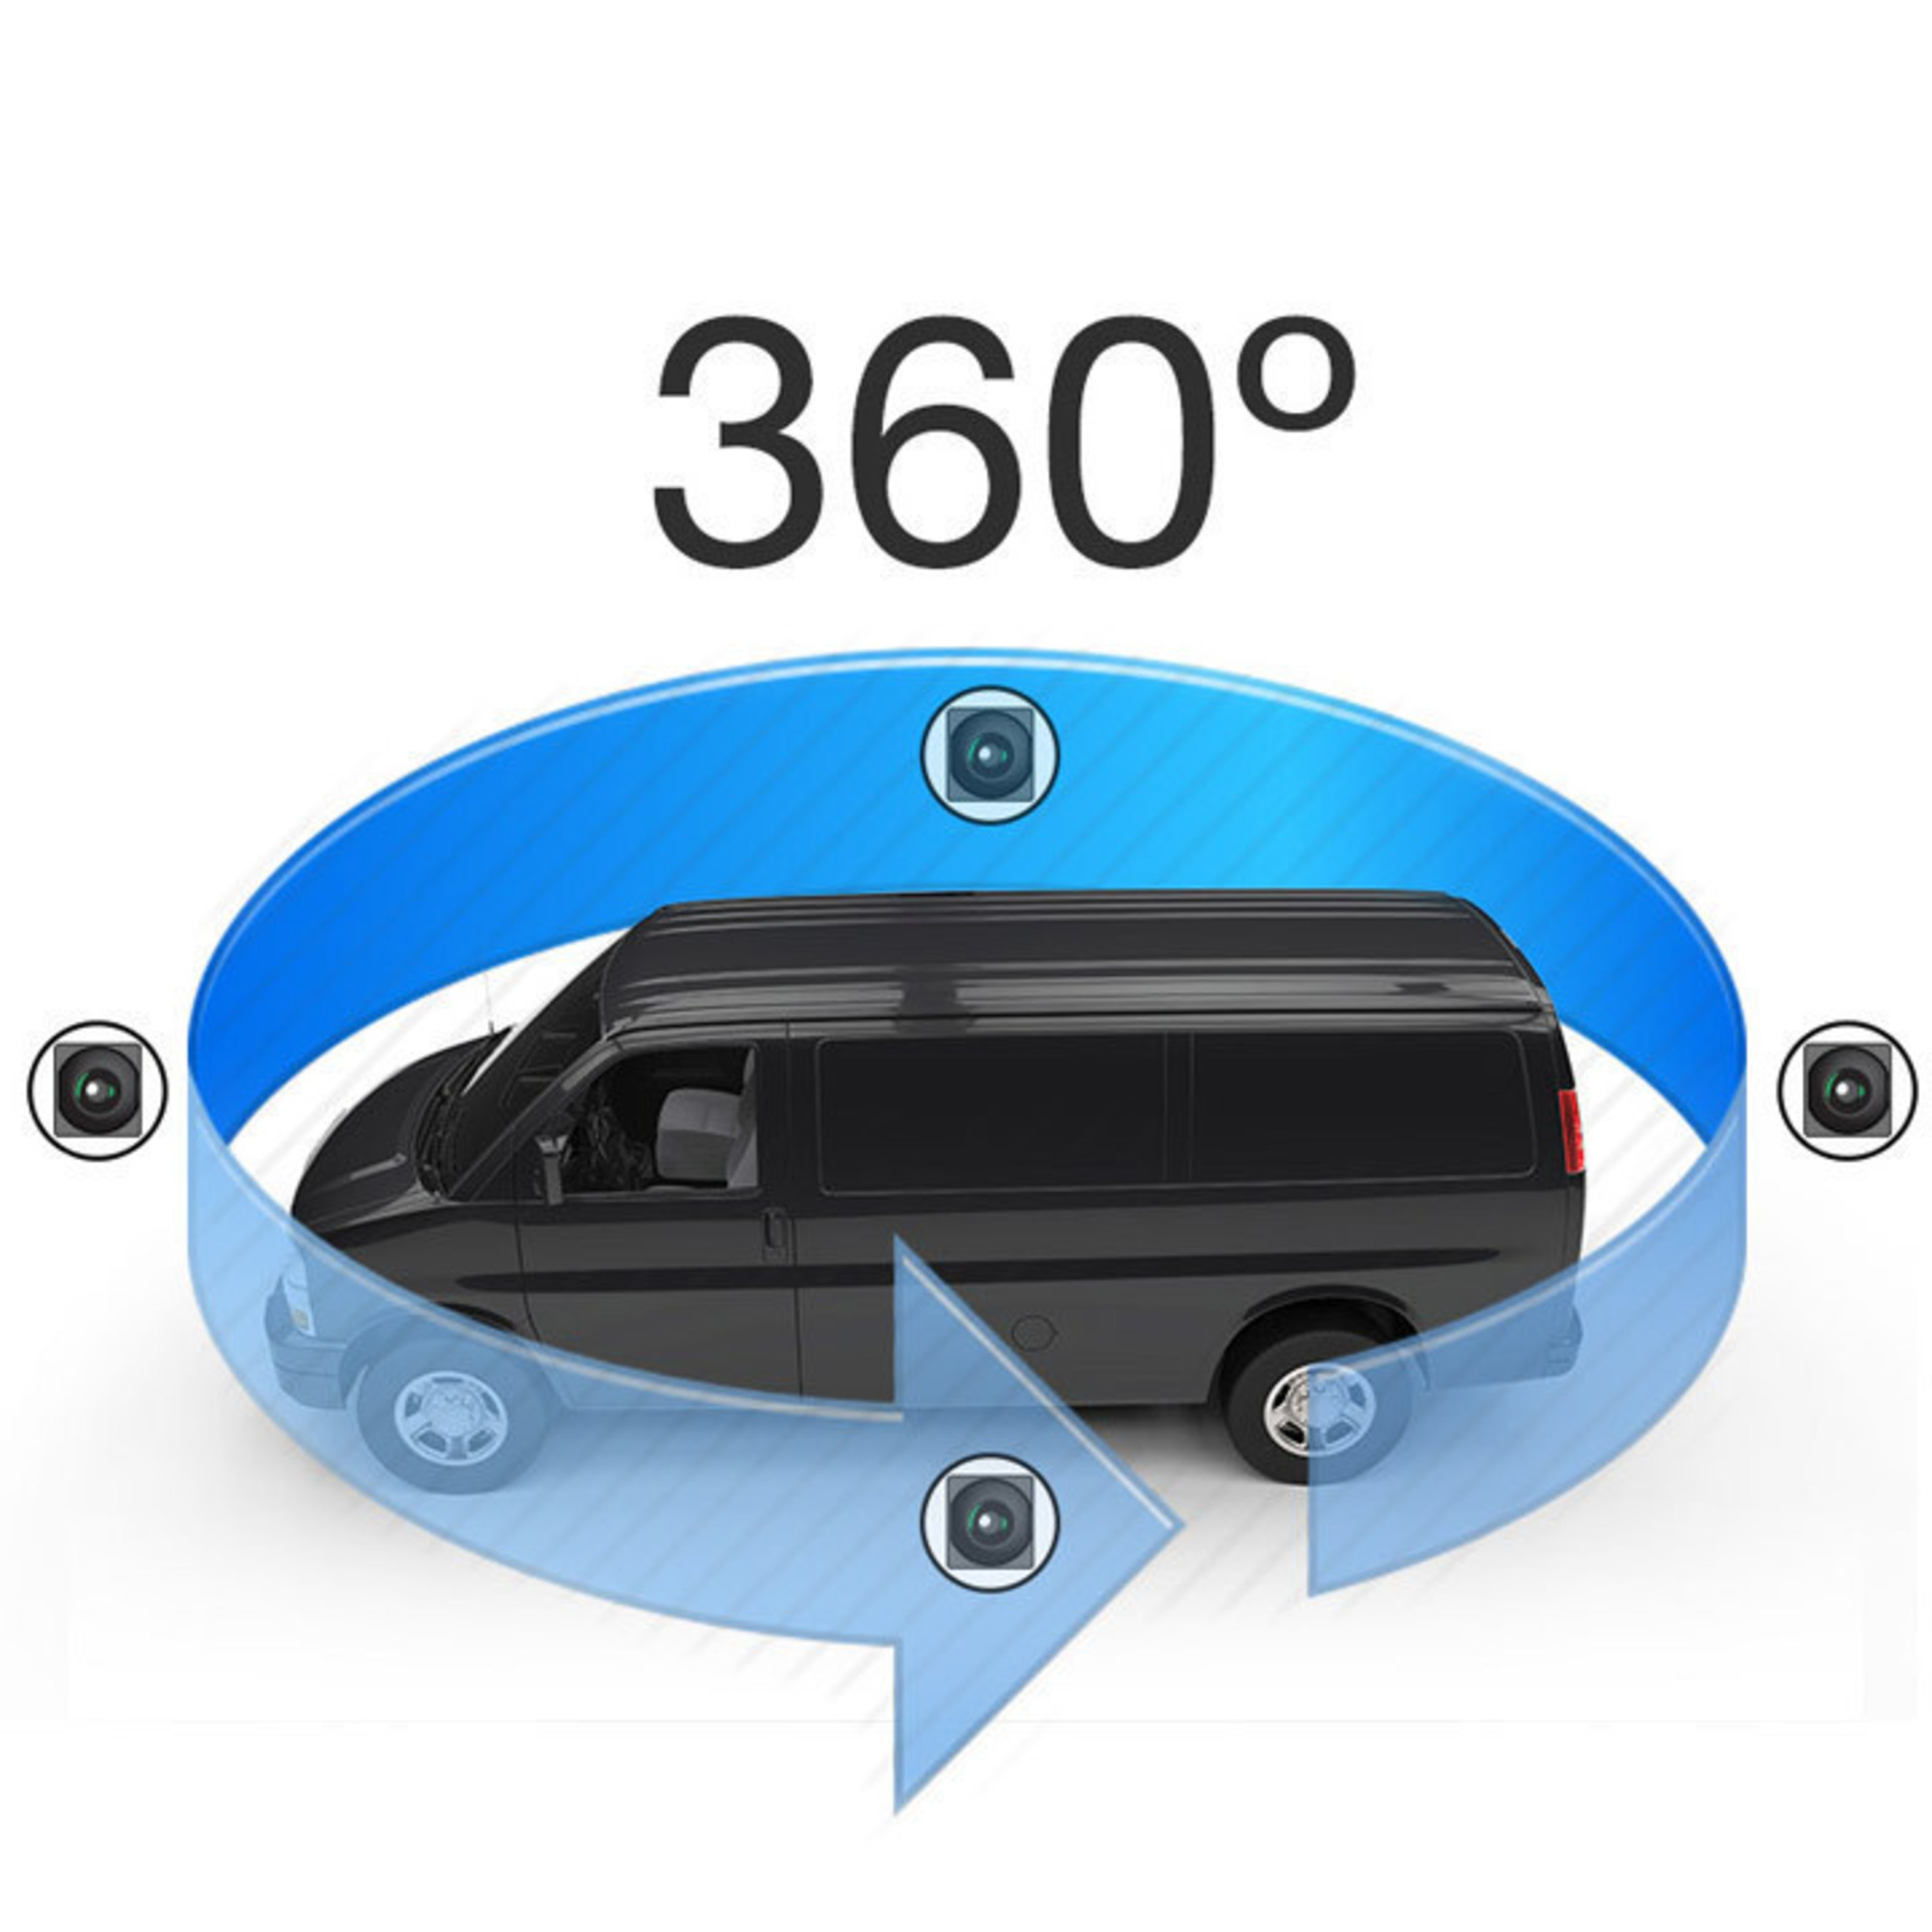 Rear View Safety 360' Surround View Camera System Erases Blind Spots With Seamless 3D Merge